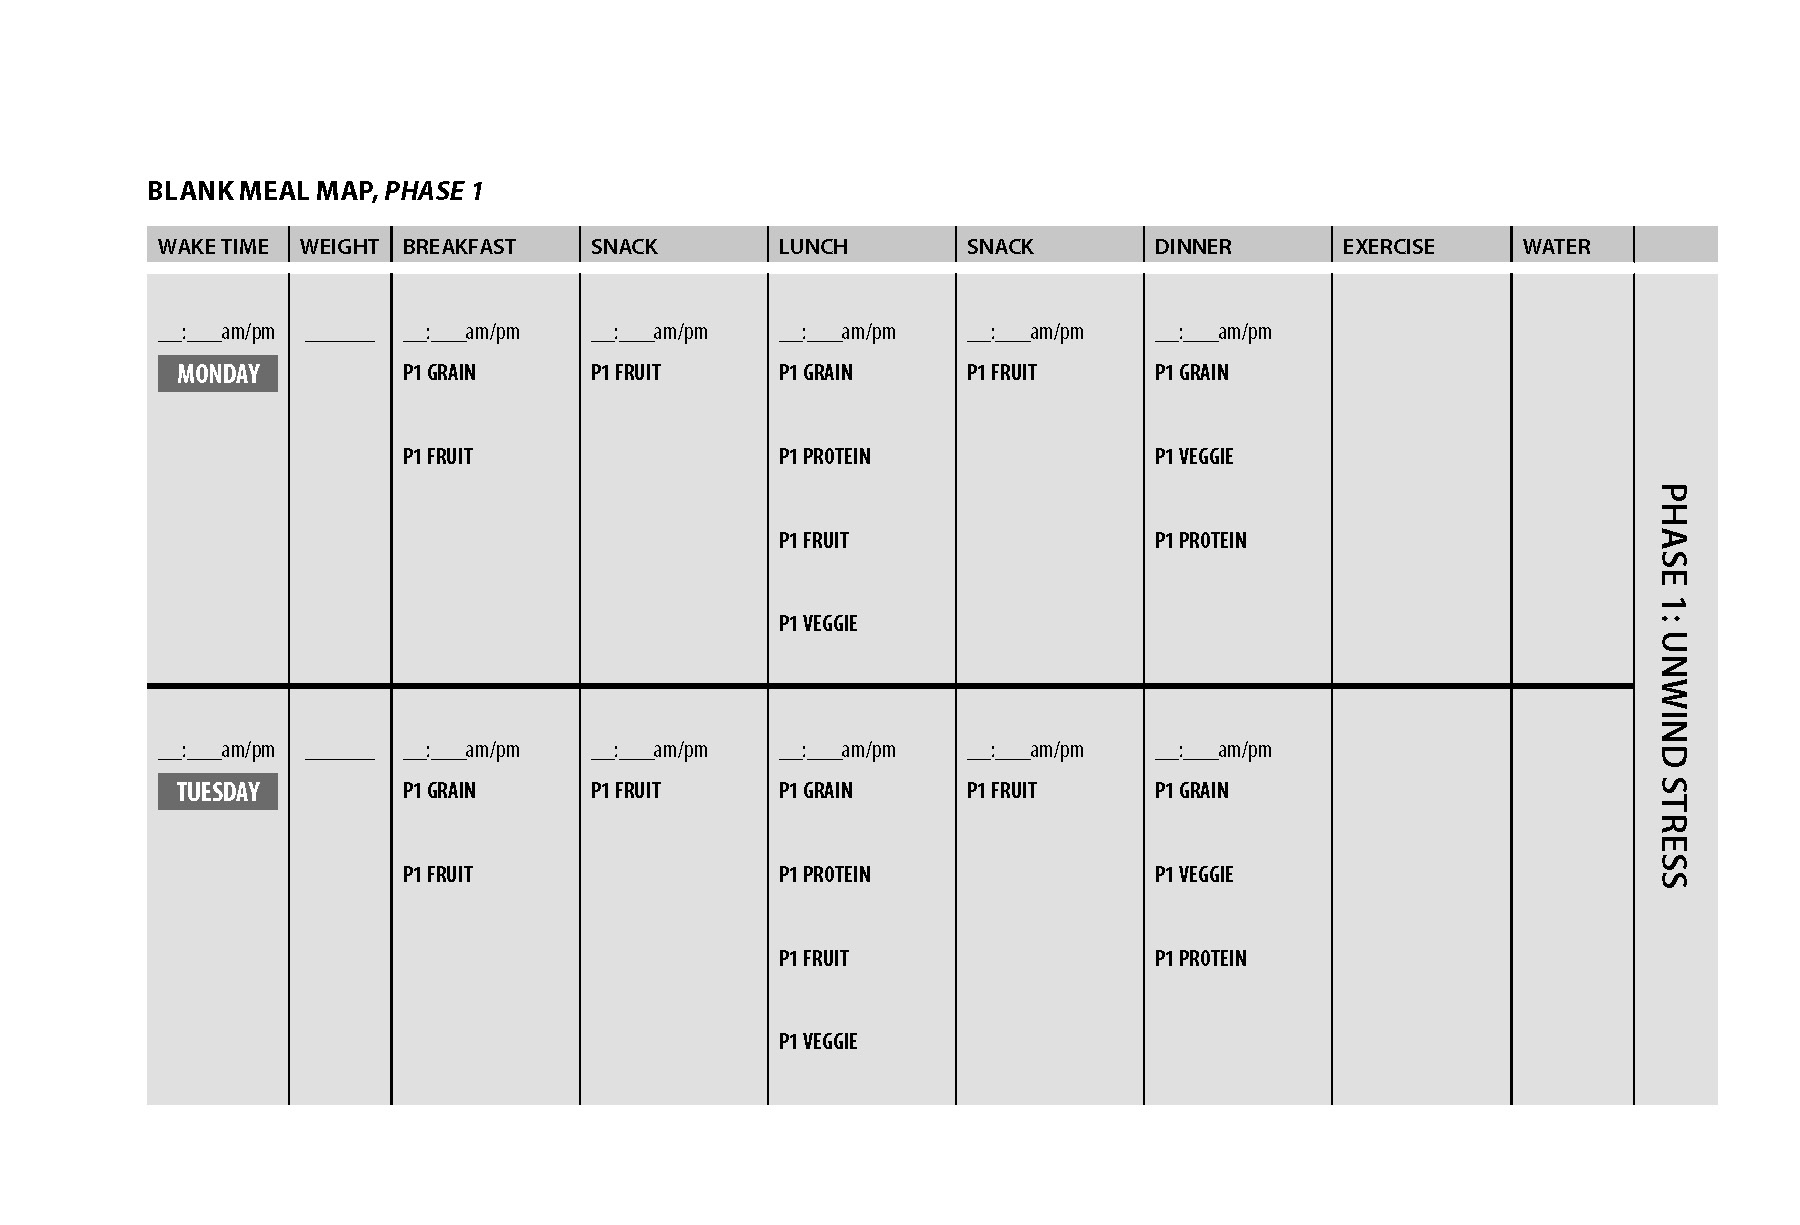 Blank Meal Plan Complete Click Here To Download As A PDF